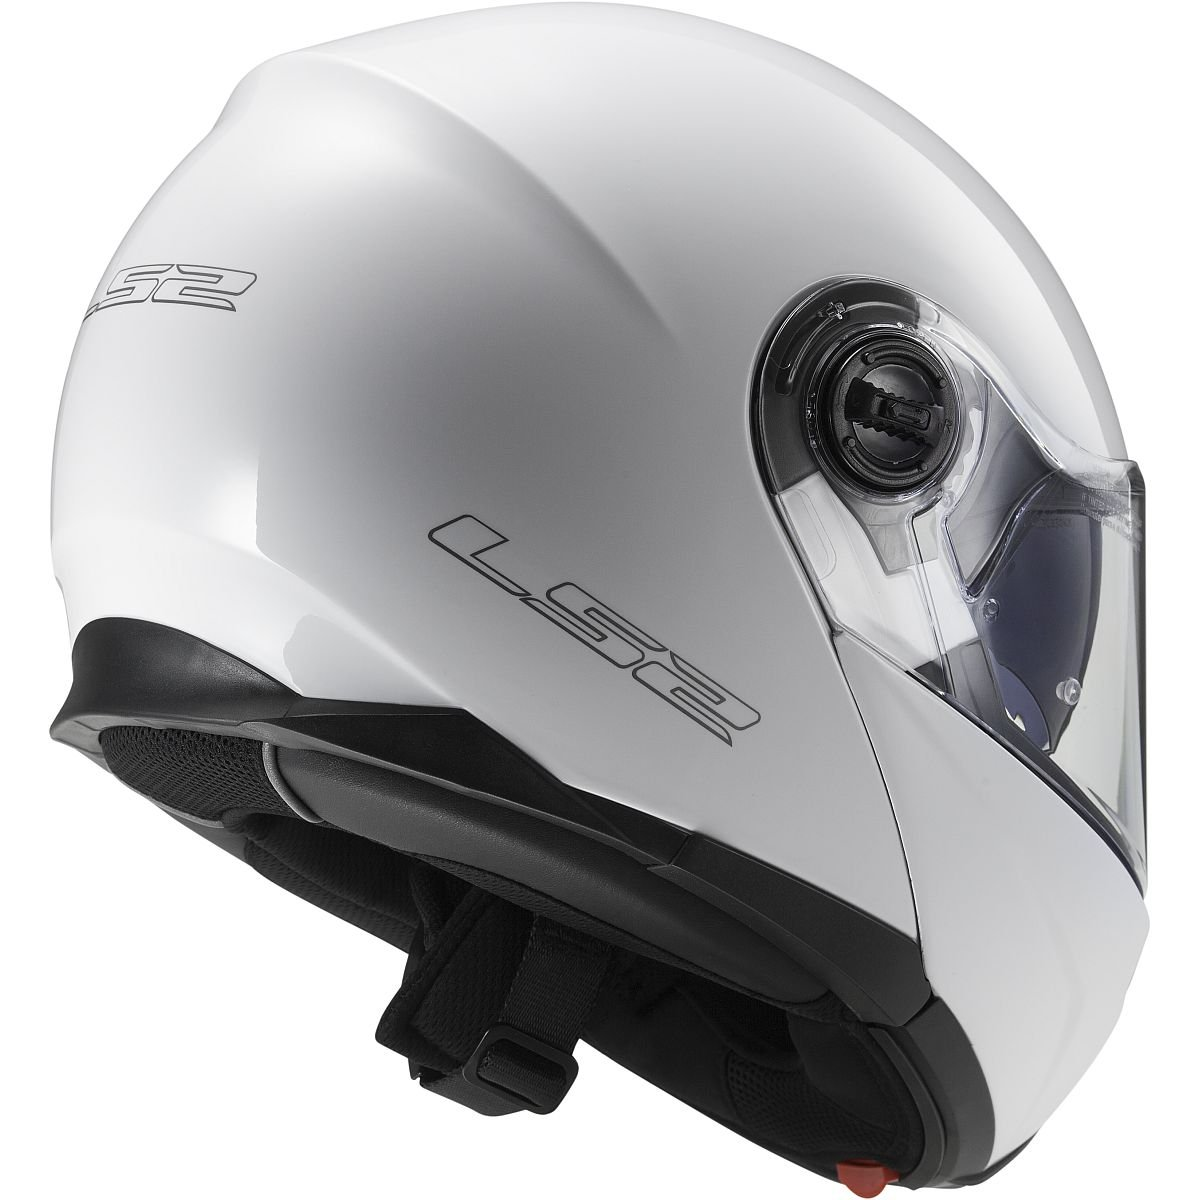 White, XX-Large LS2 Helmets Strobe Solid Modular Motorcycle Helmet with Sunshield